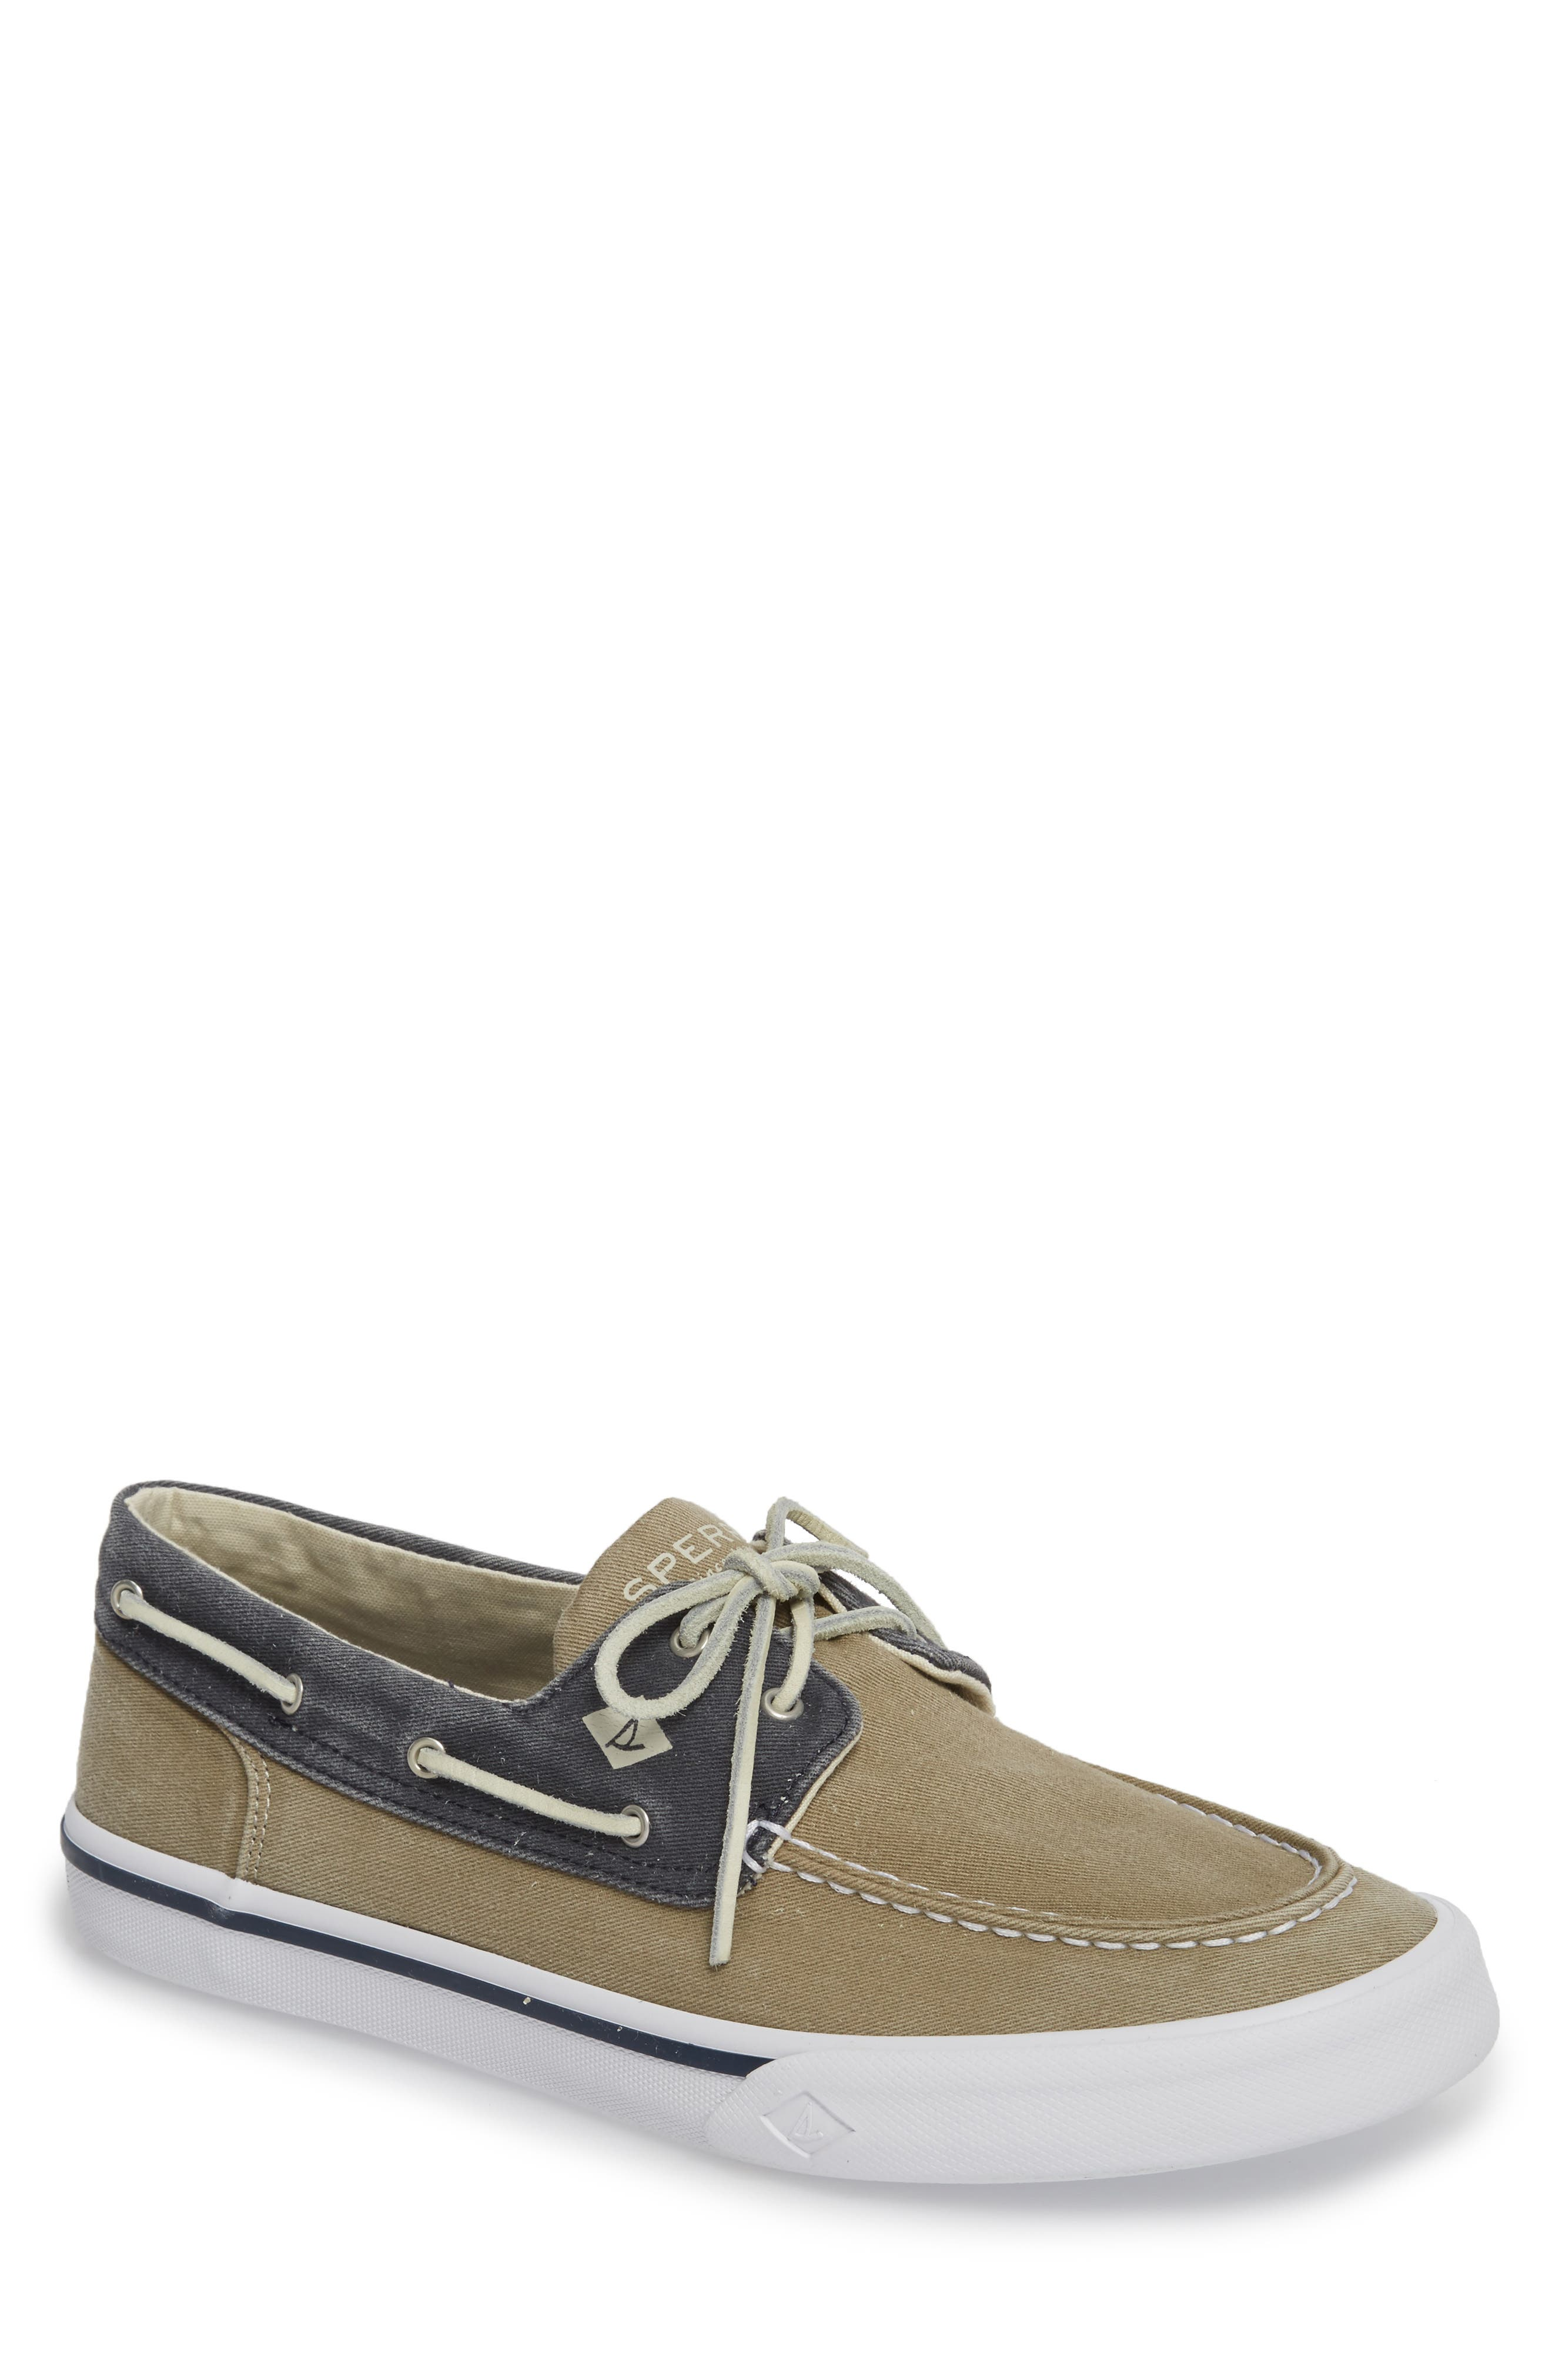 Striper II Boat Shoe,                         Main,                         color, Taupe/ Navy